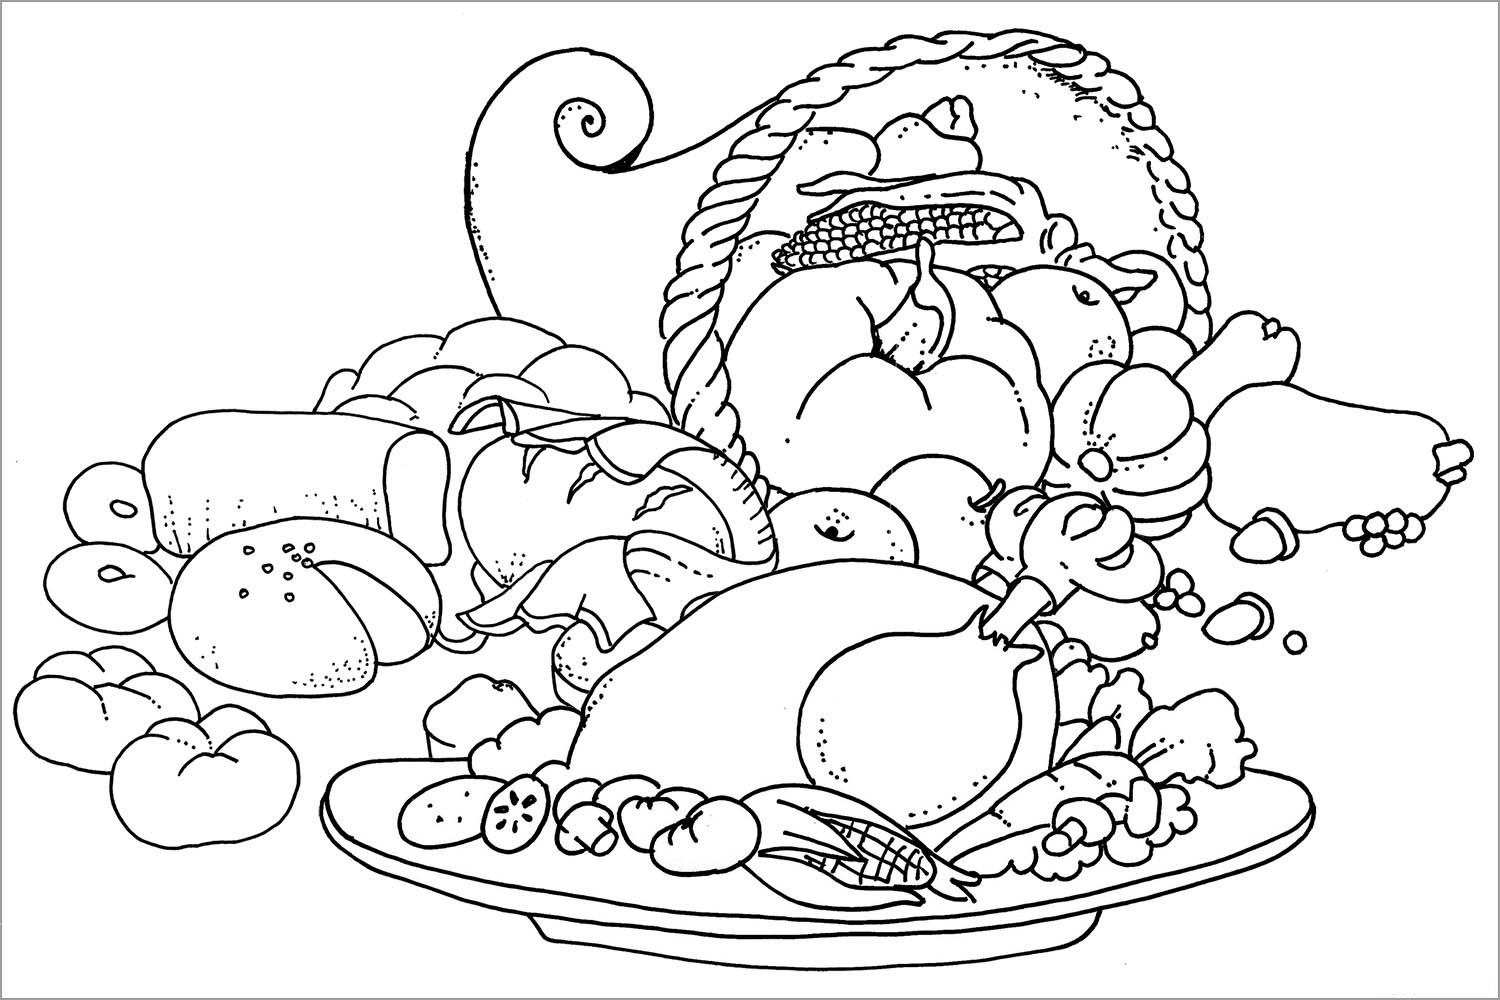 Printable Thanksgiving Coloring Pages | Coloring Me